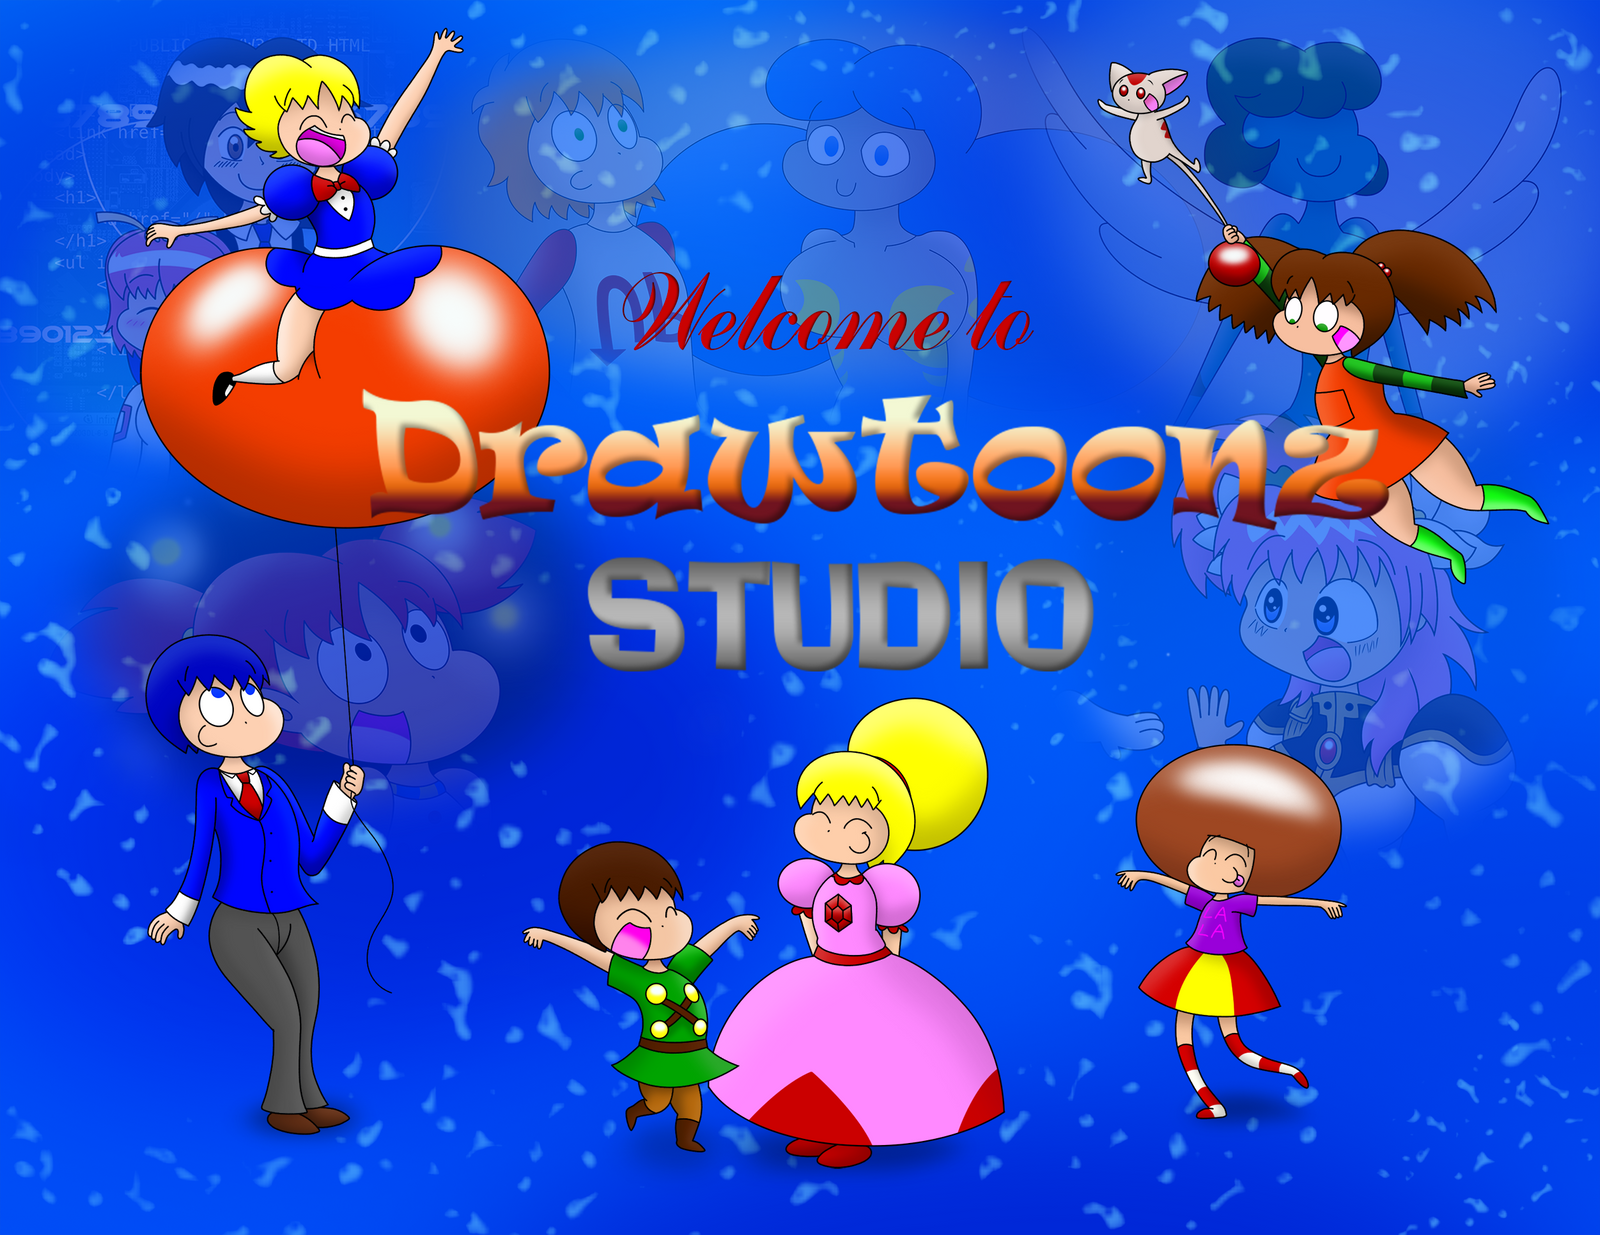 DrawtoonzStudio's Profile Picture